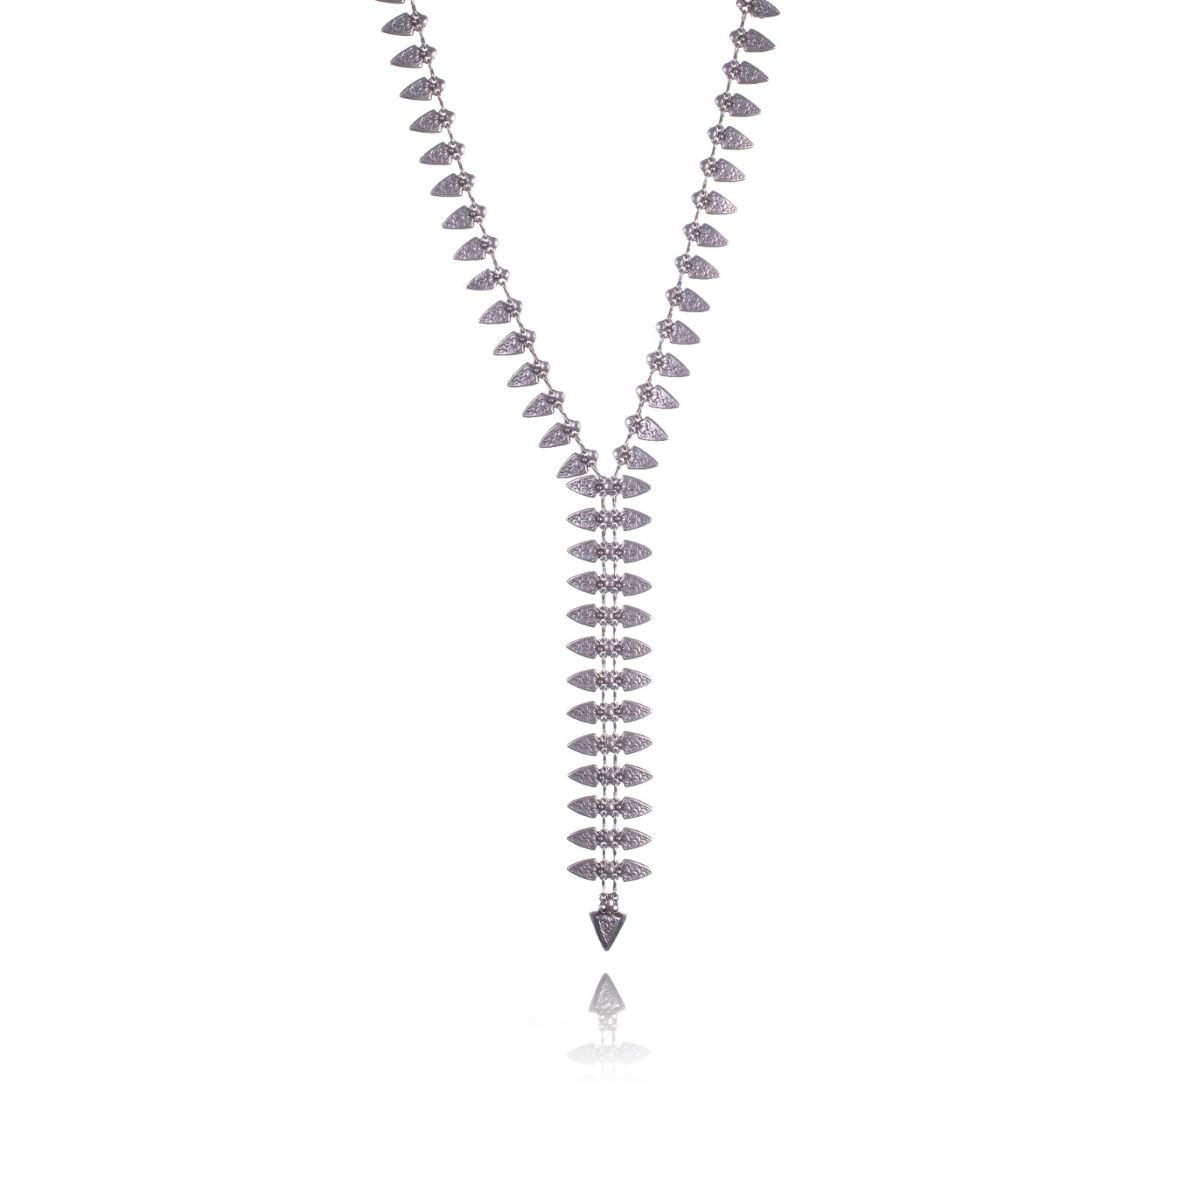 Éclair long necklace tie-shaped with silvered metal pieces with engravings